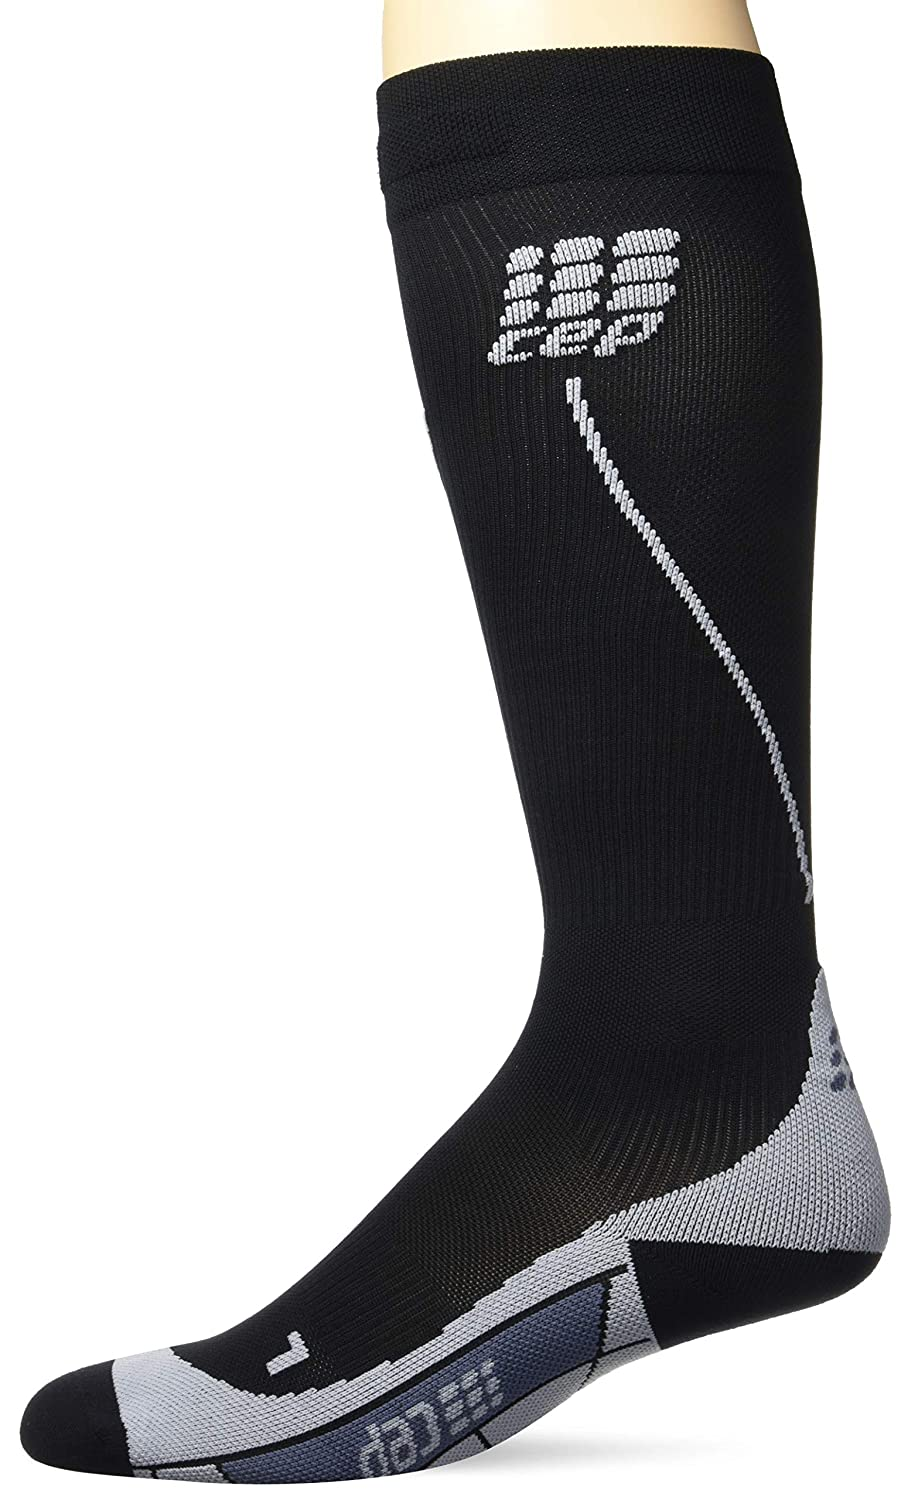 Men's Clothing Run Socks 2.0 Herren Kompressionssocken Socken Strümpfe Wp553 Men's Clothing Cep Progressive